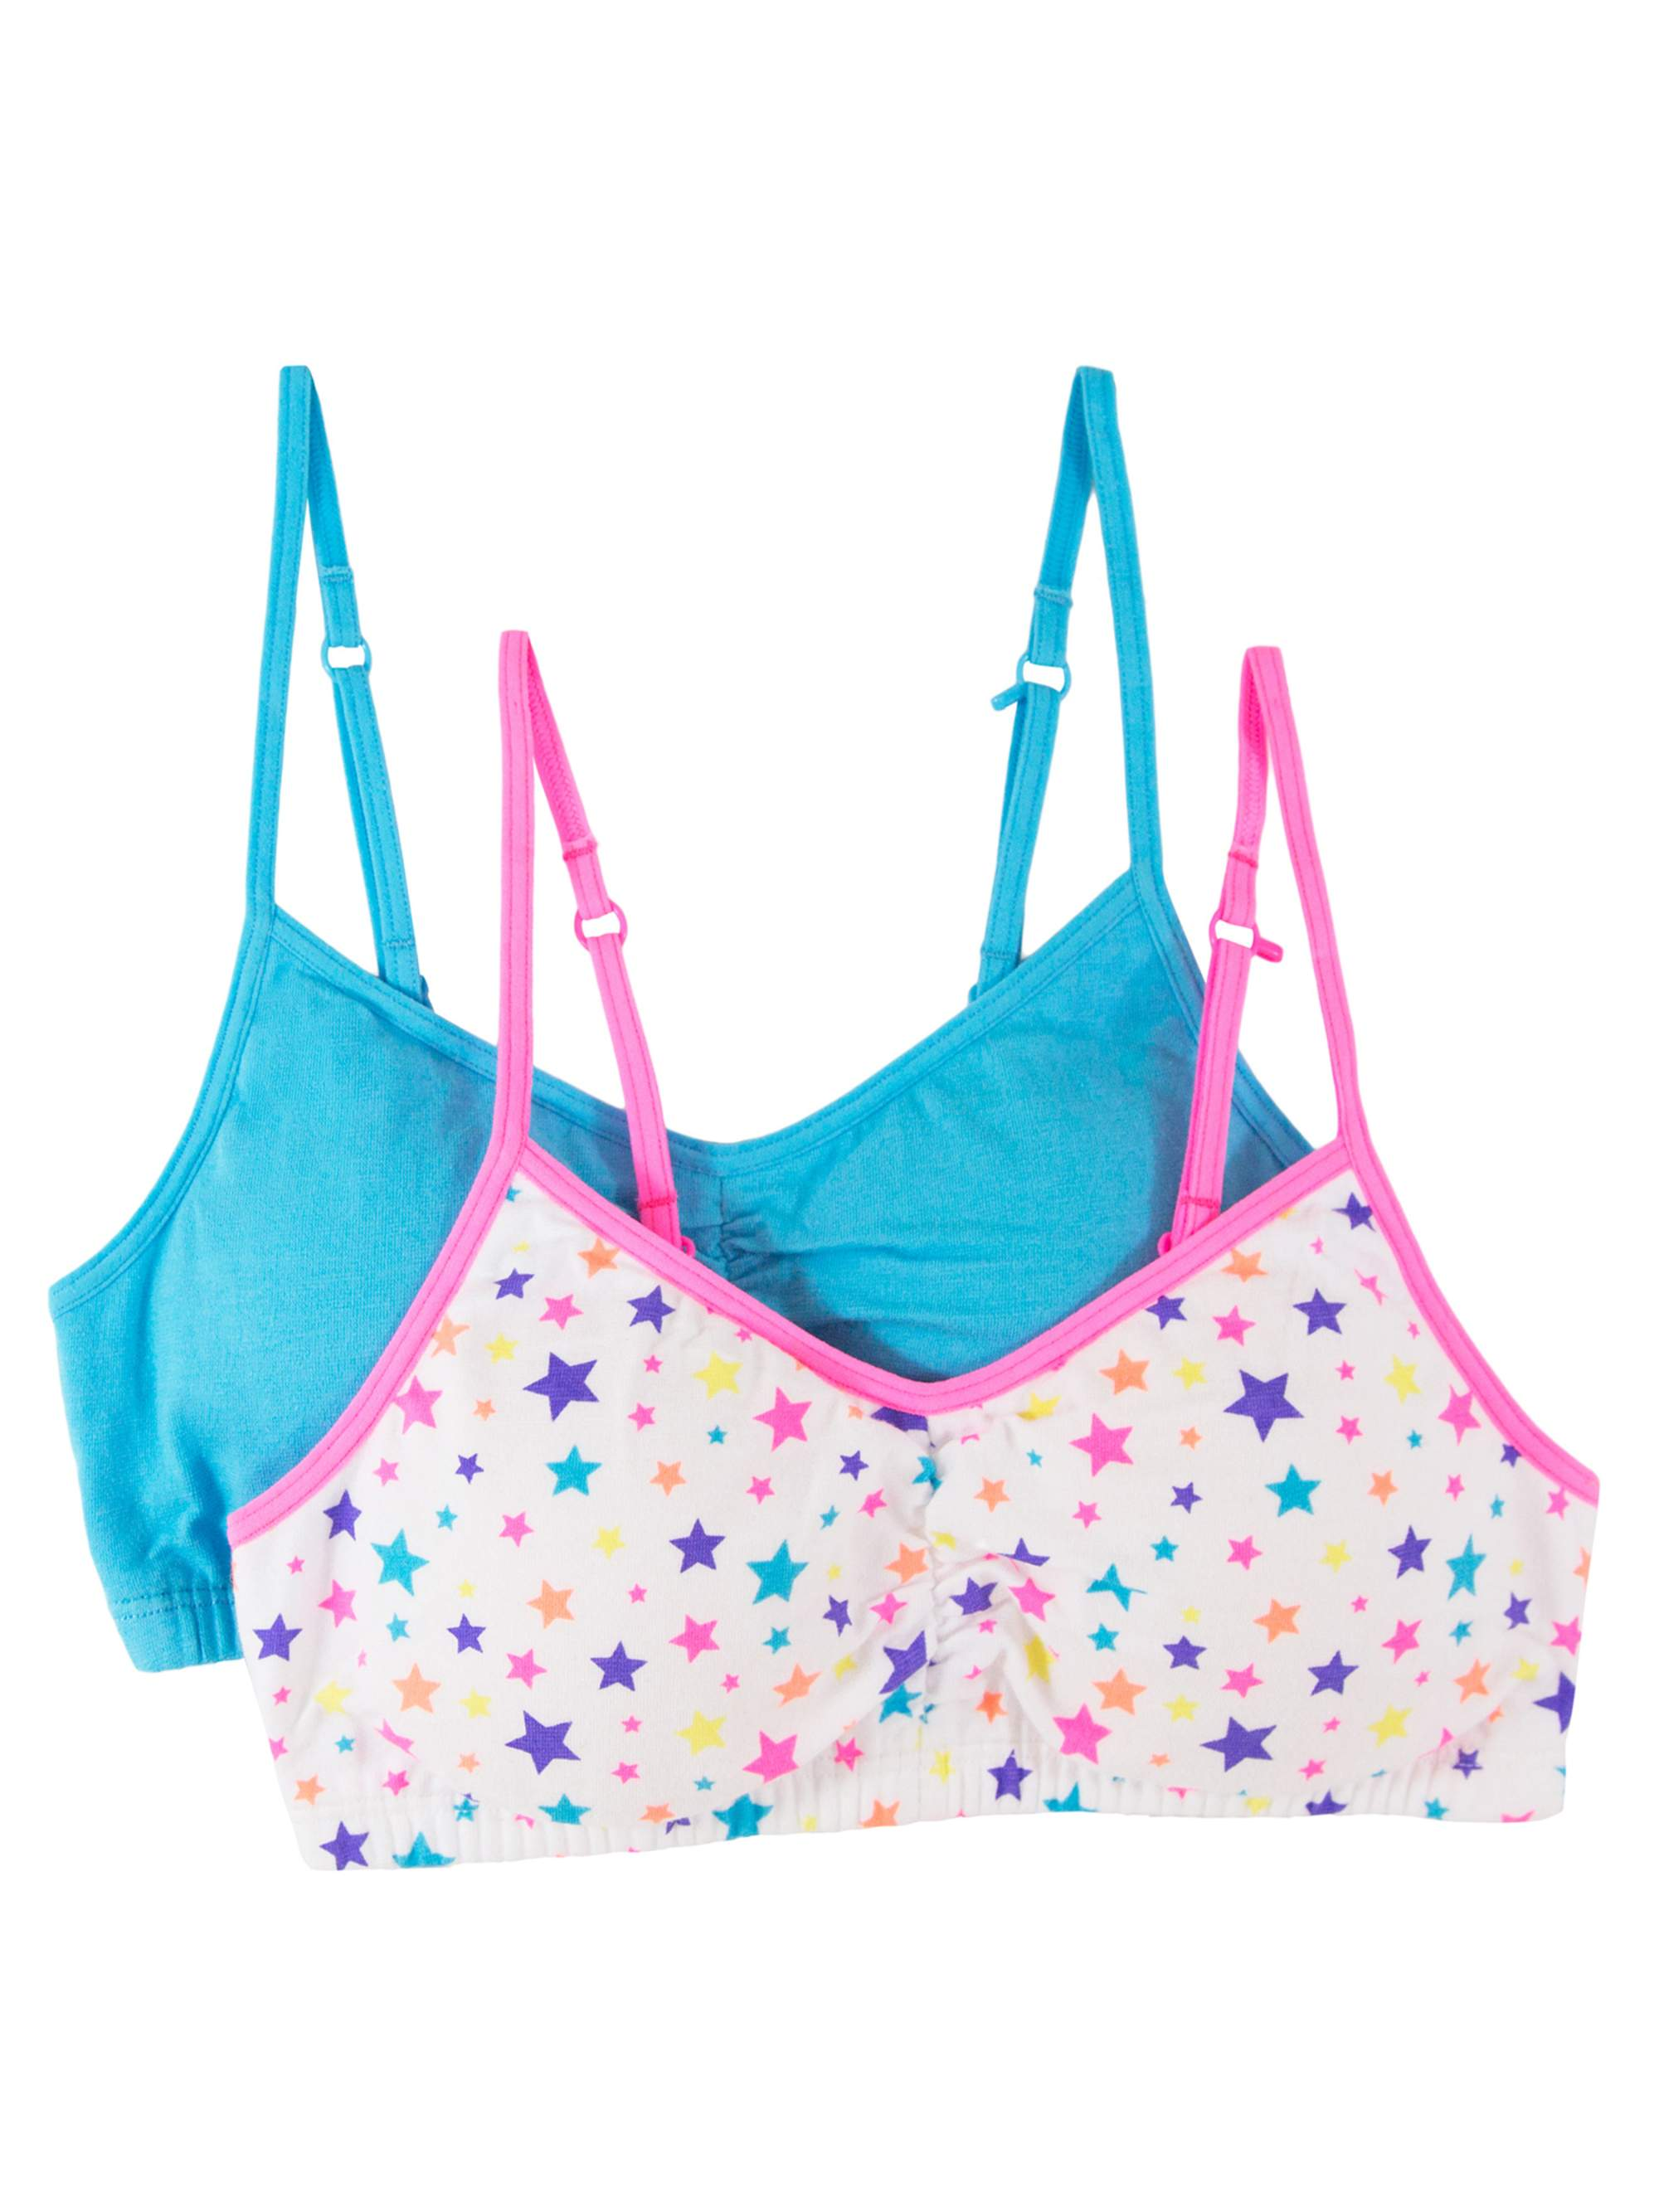 Fruit of the Loom Girls Bra with Removable Cookies